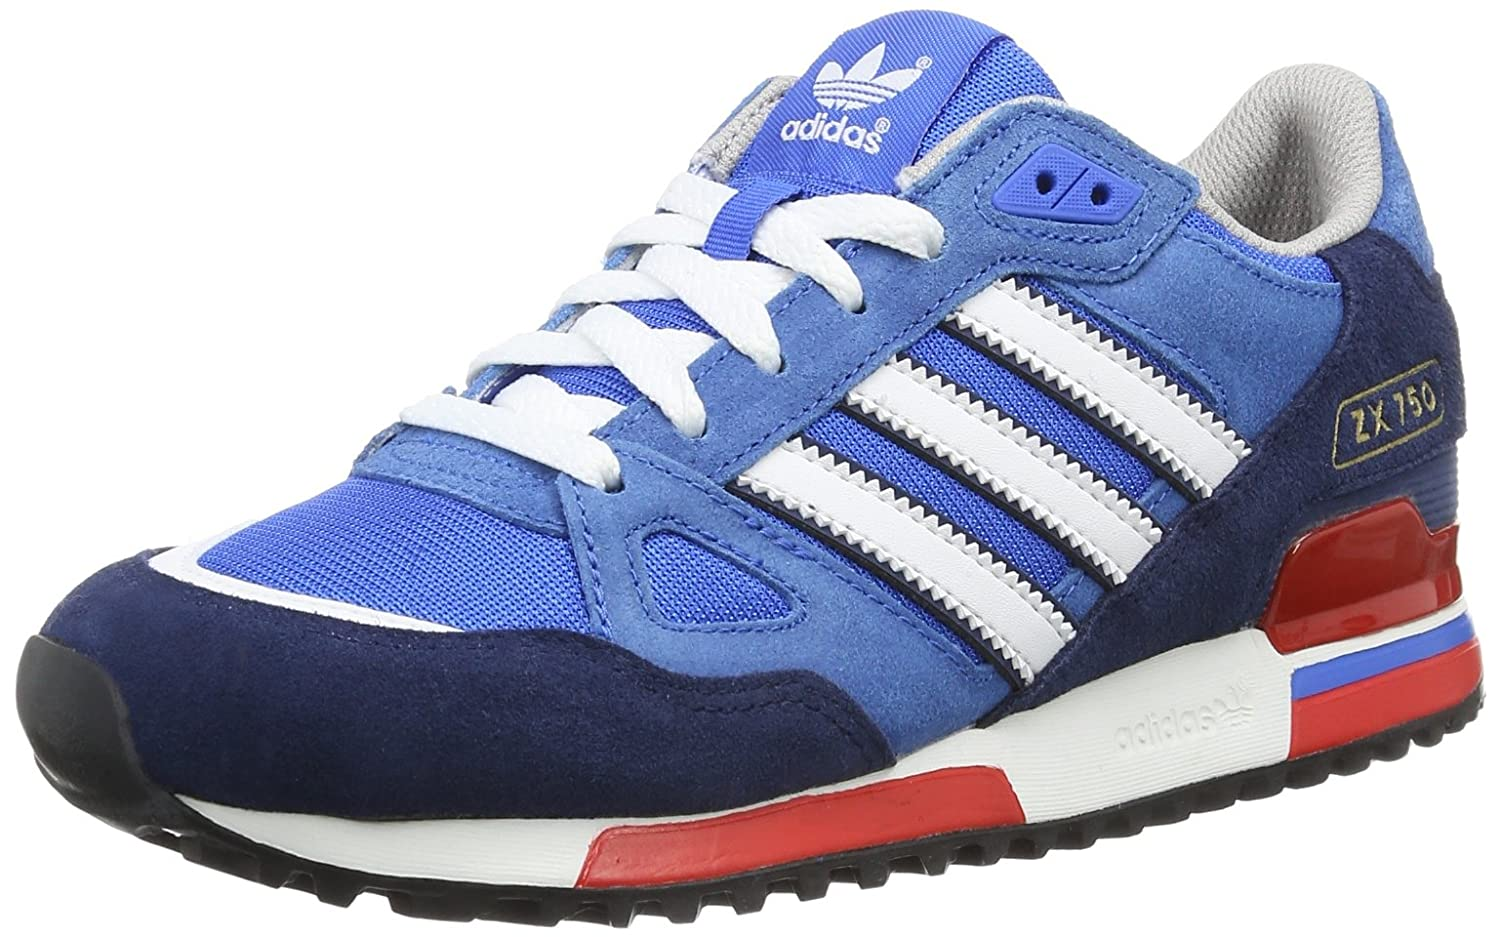 959ccca196139 adidas Originals Men s ZX 750 trainers navy white red G96718  UK 6    Amazon.co.uk  Shoes   Bags